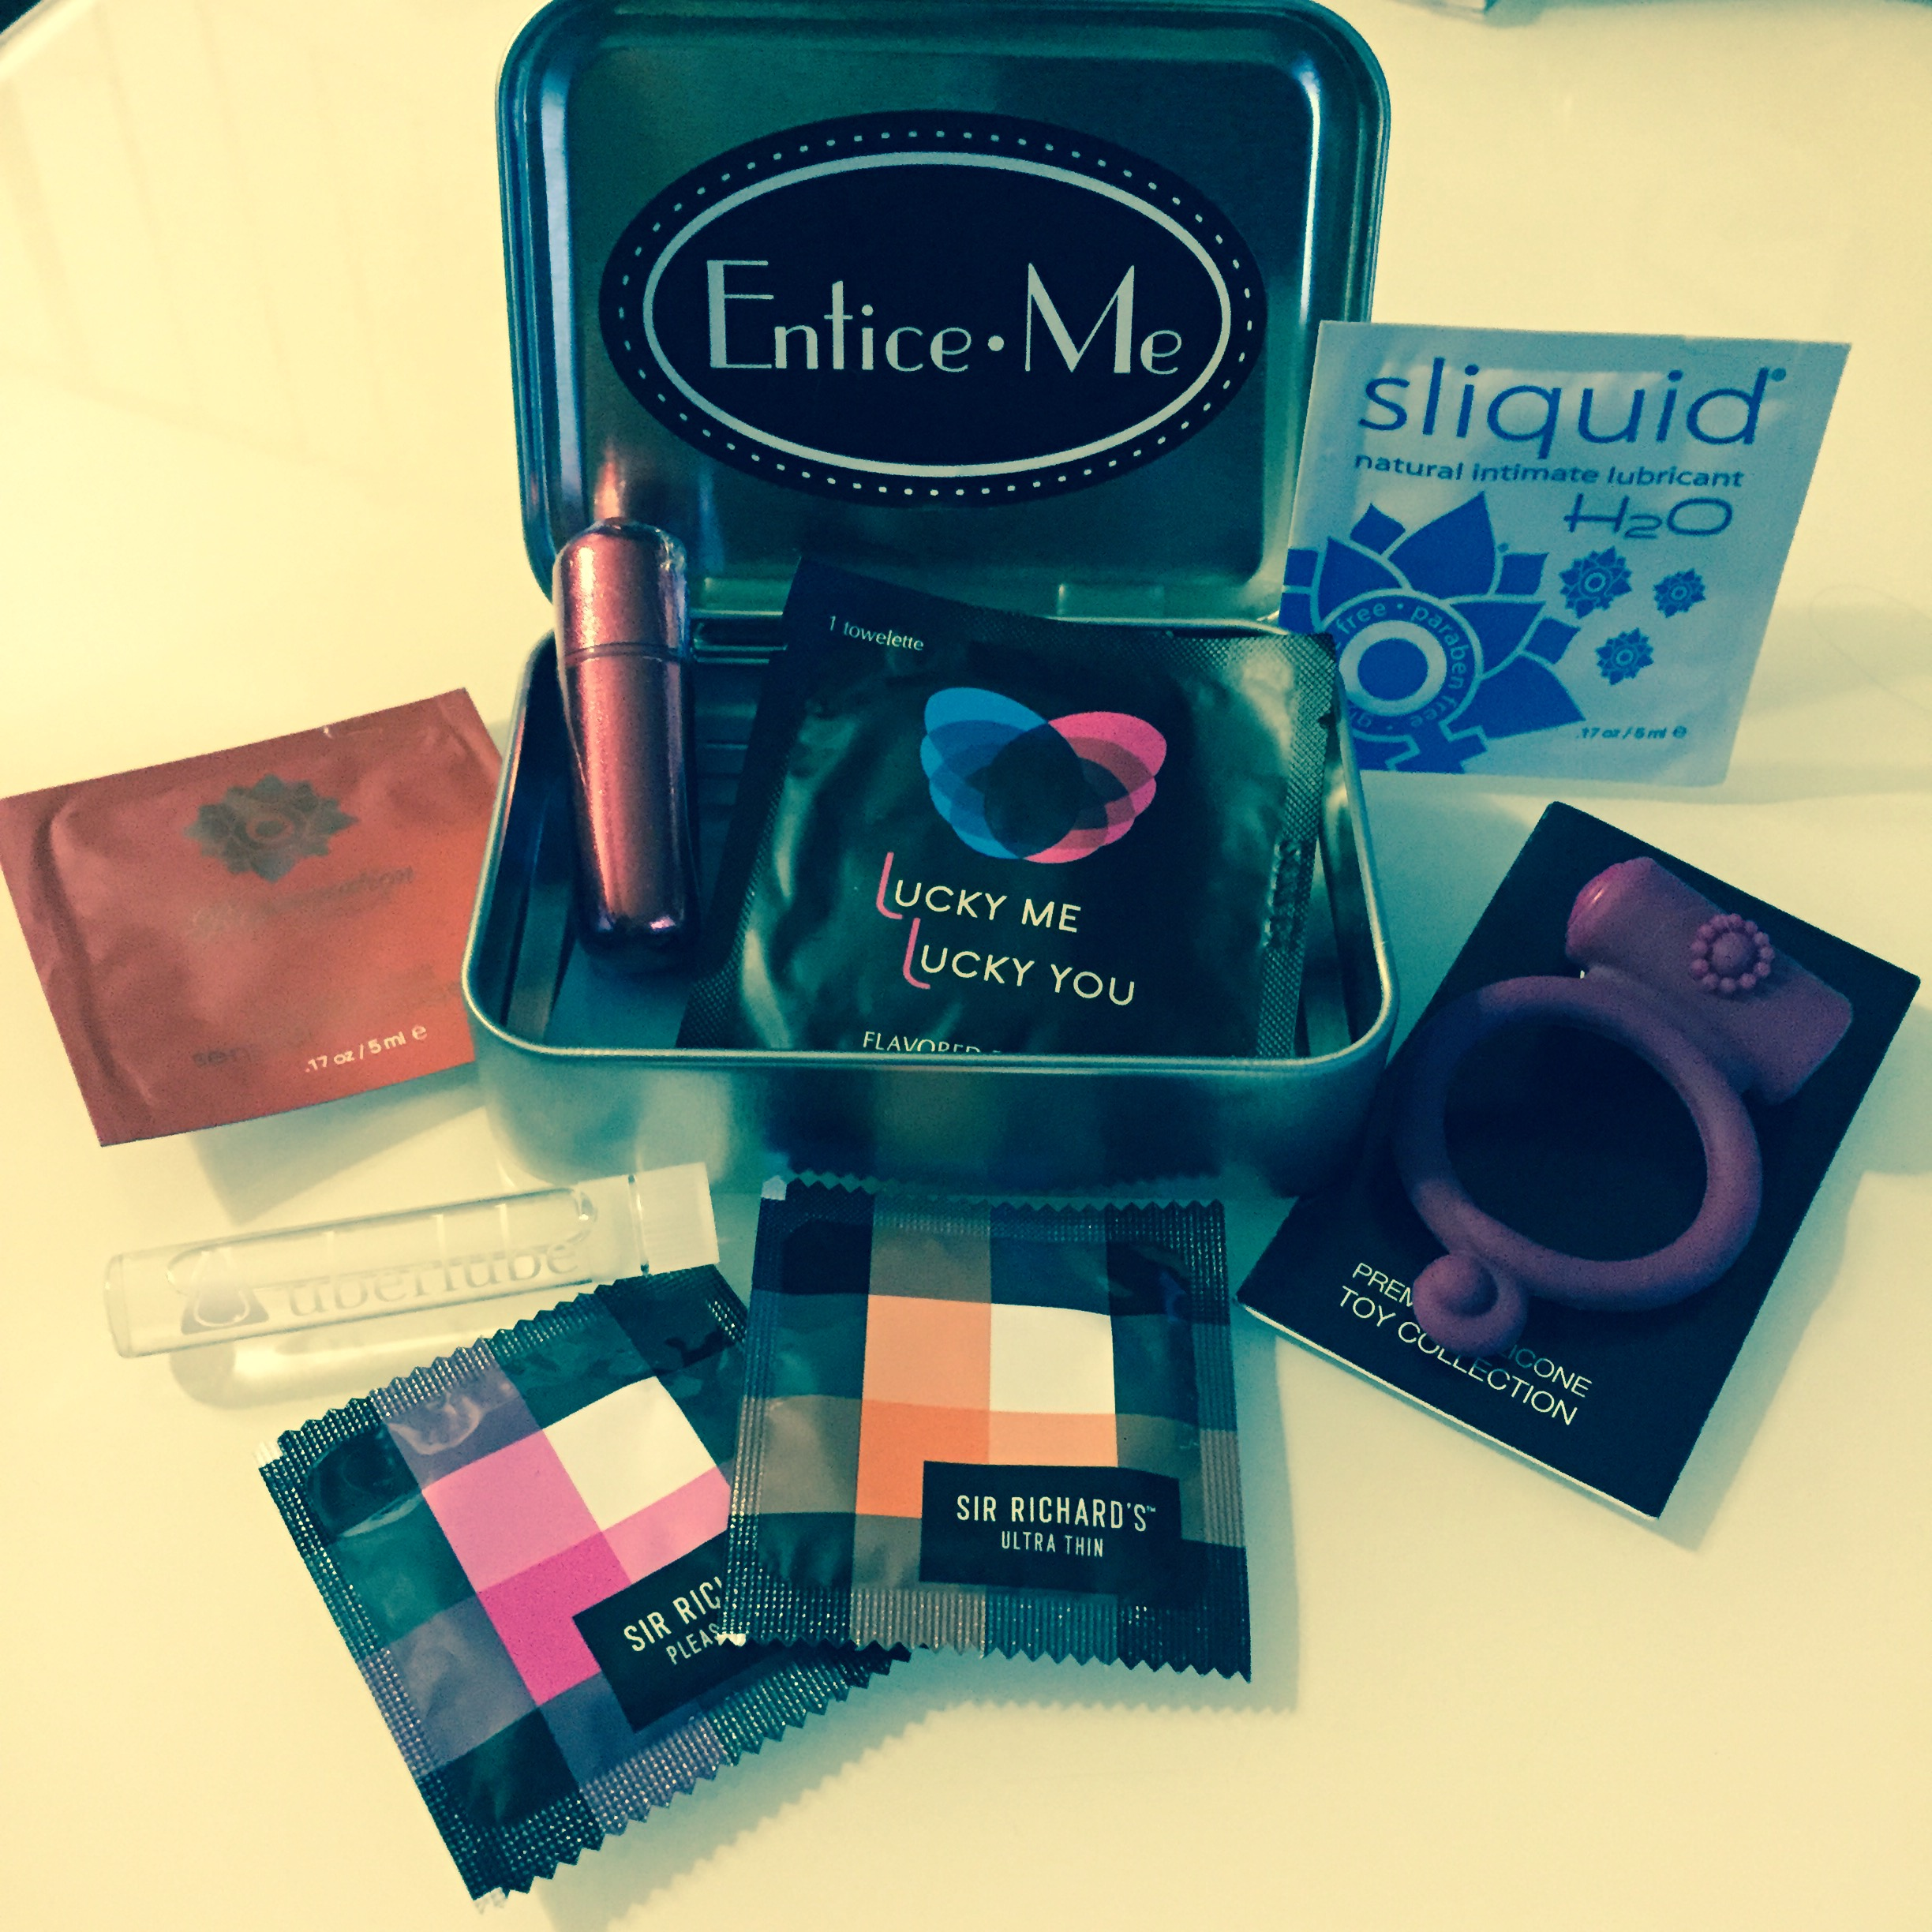 Entice.Me coupon code